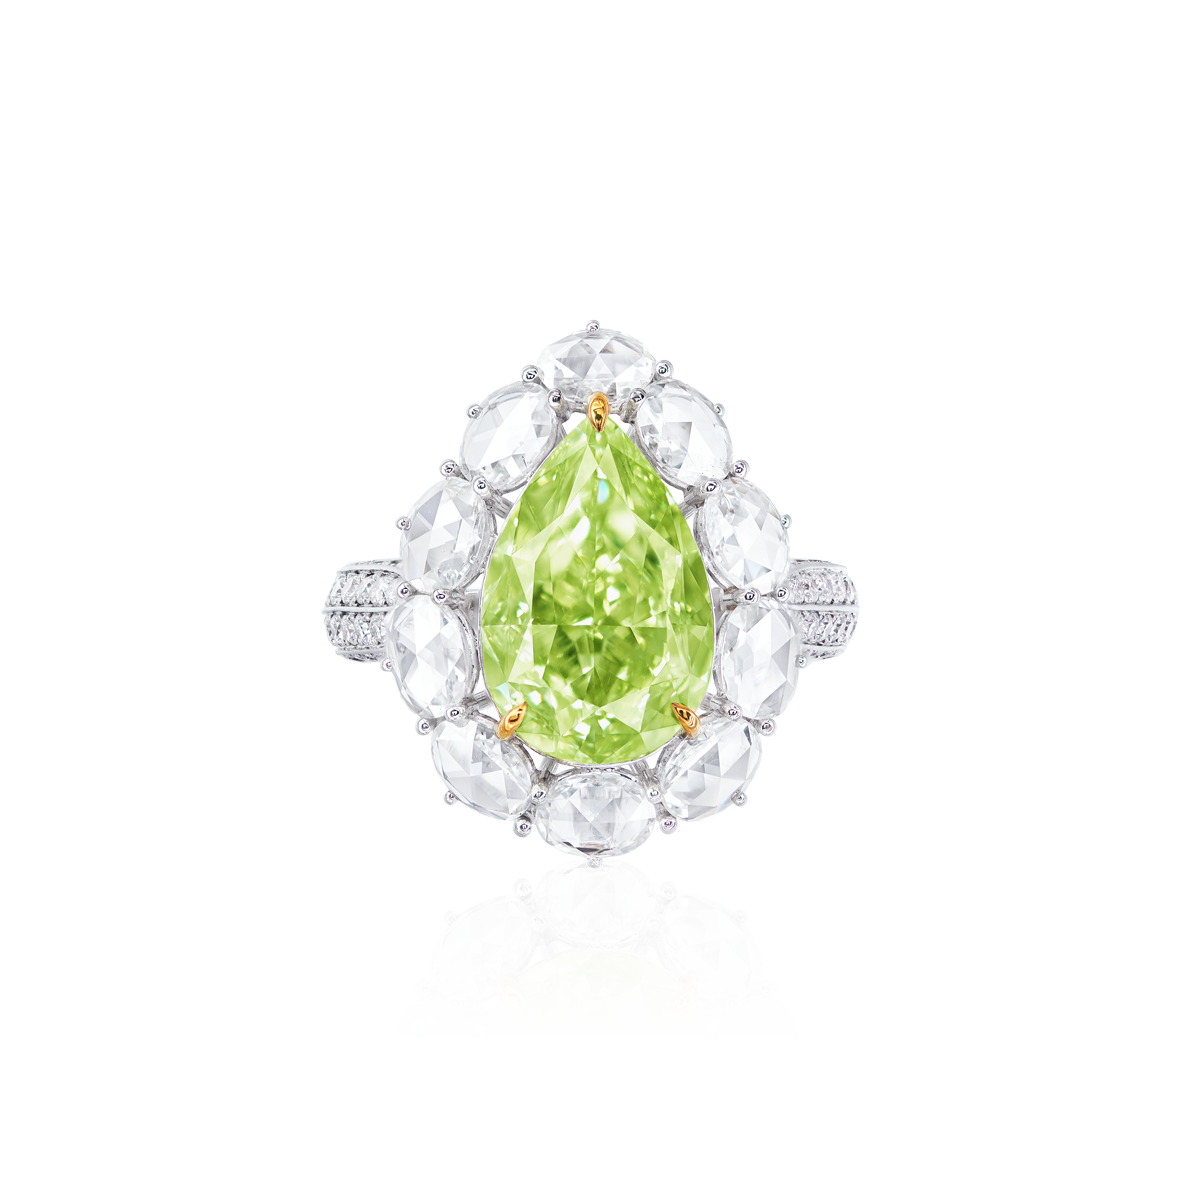 GIA 5.53 克拉黃綠彩鑽鑽石戒